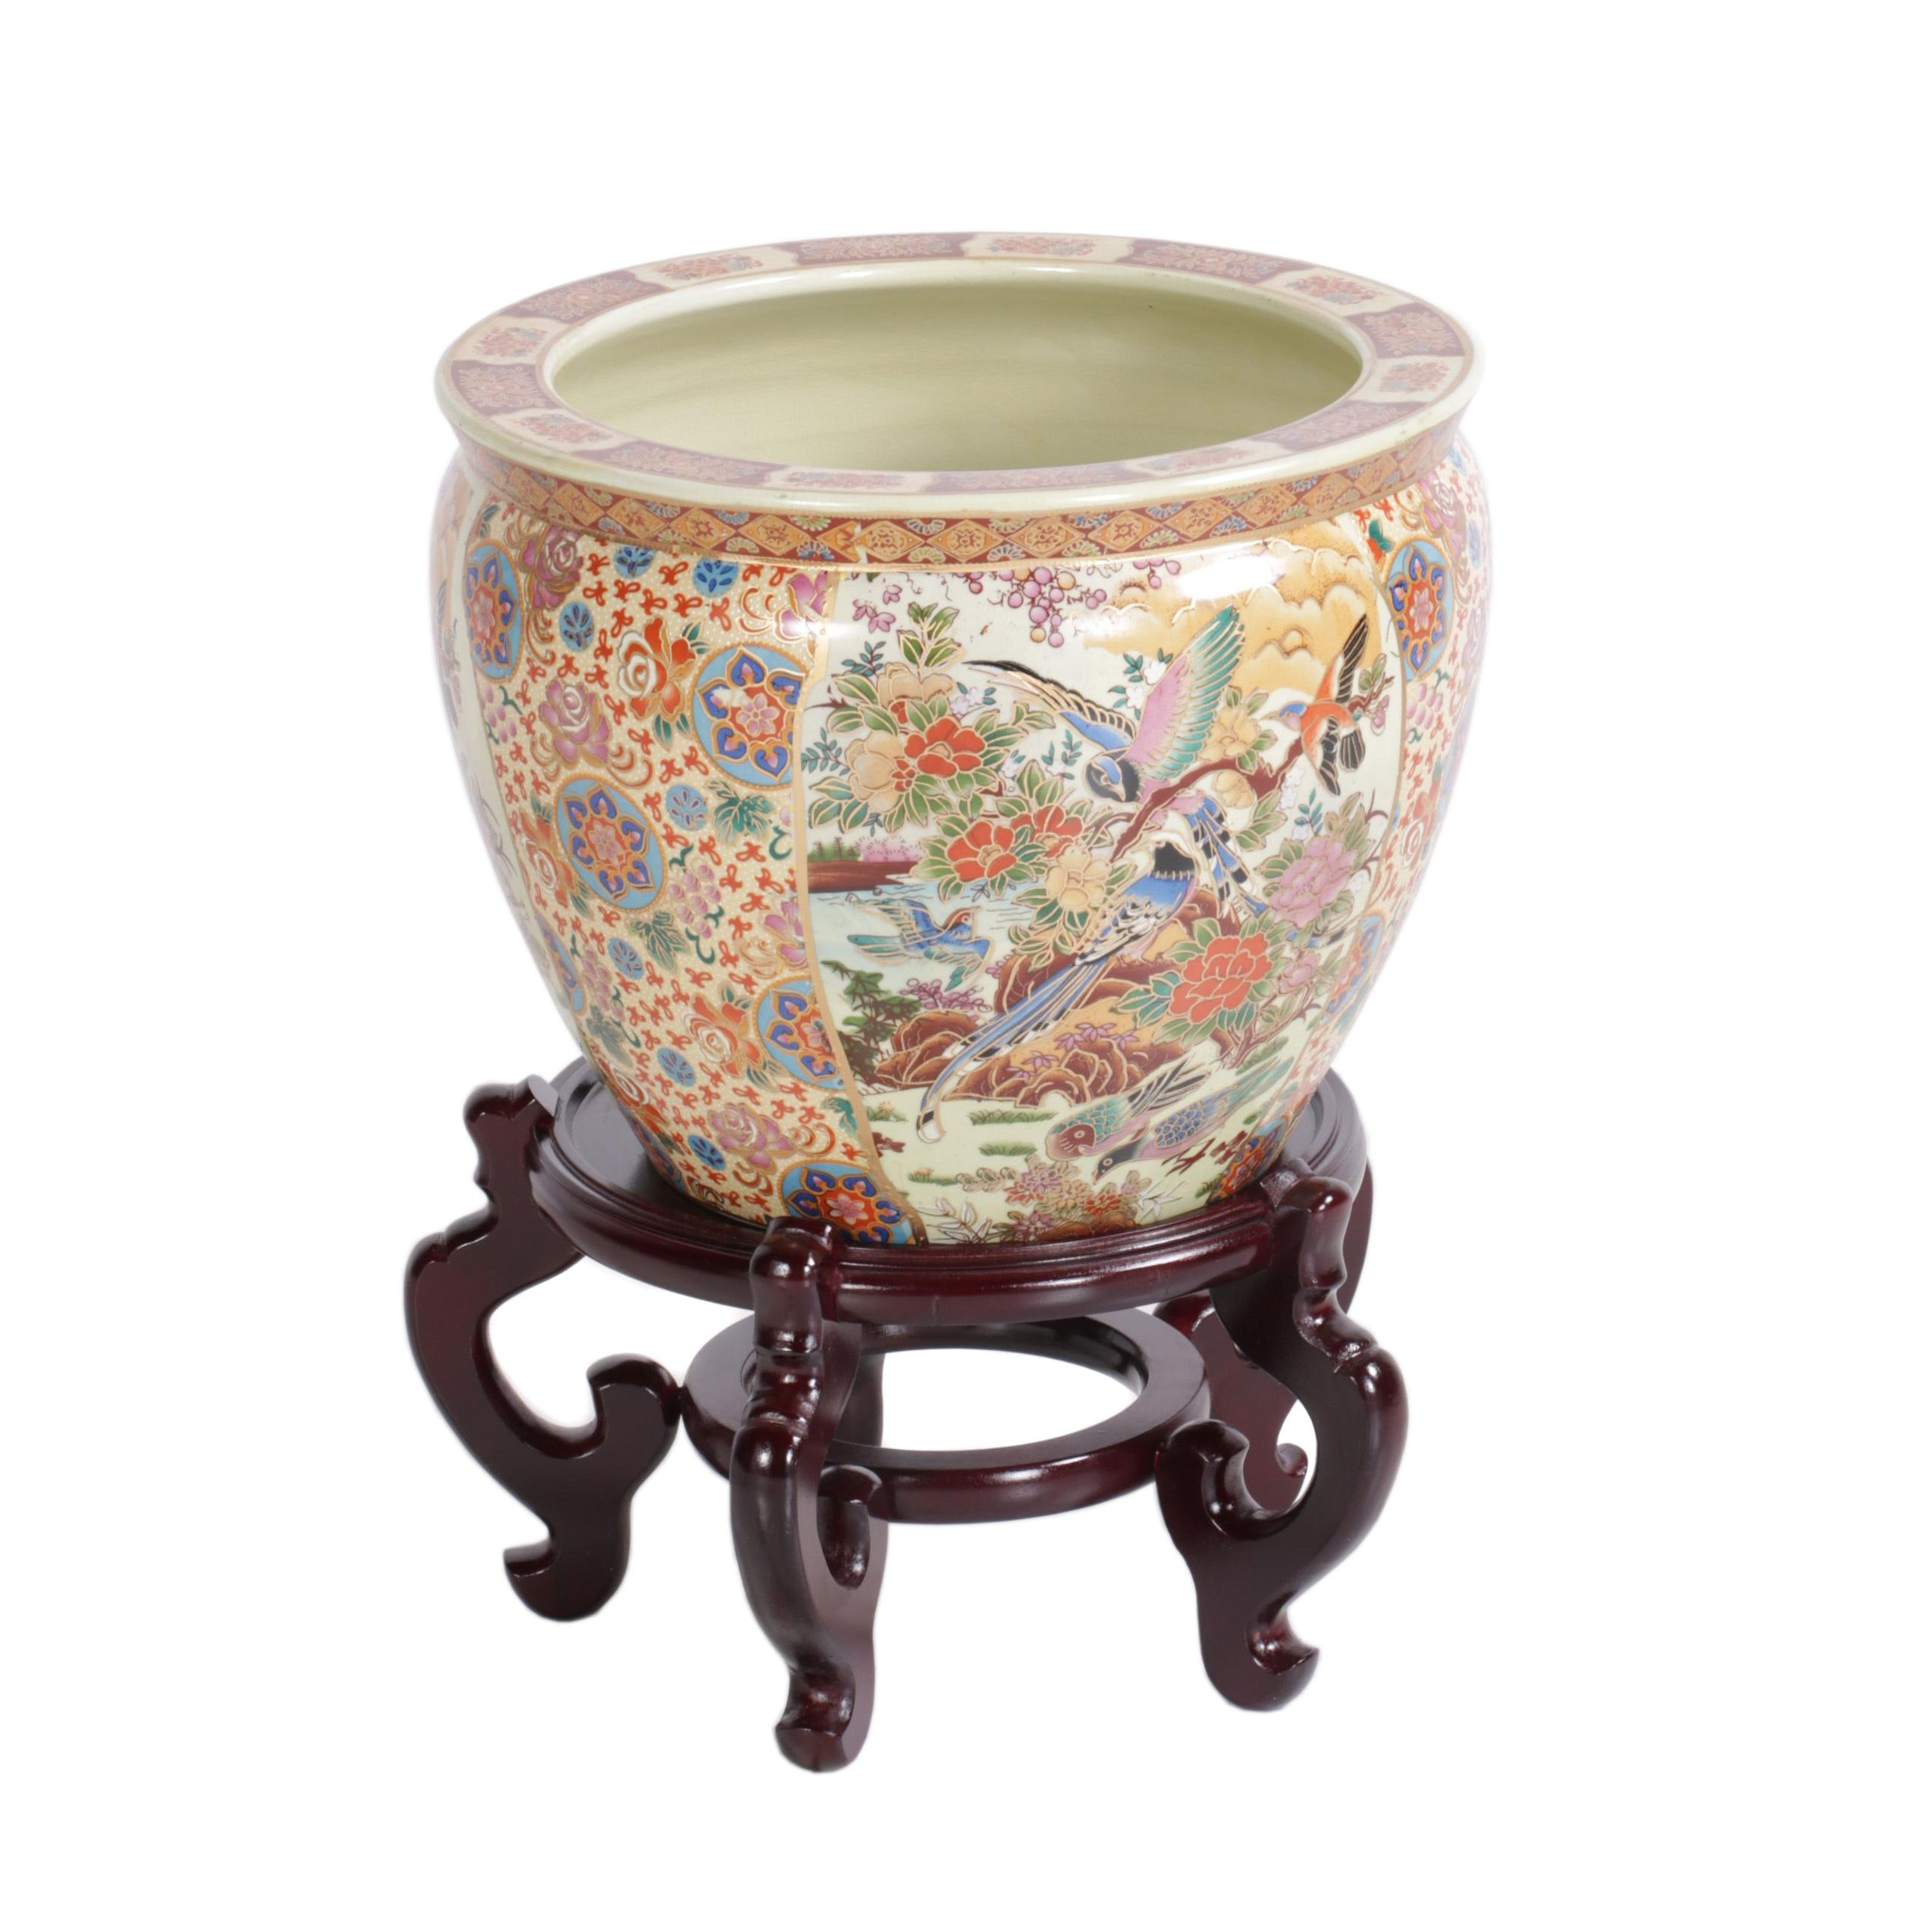 Decorative Asian Ceramic Planter on Wooden Stand